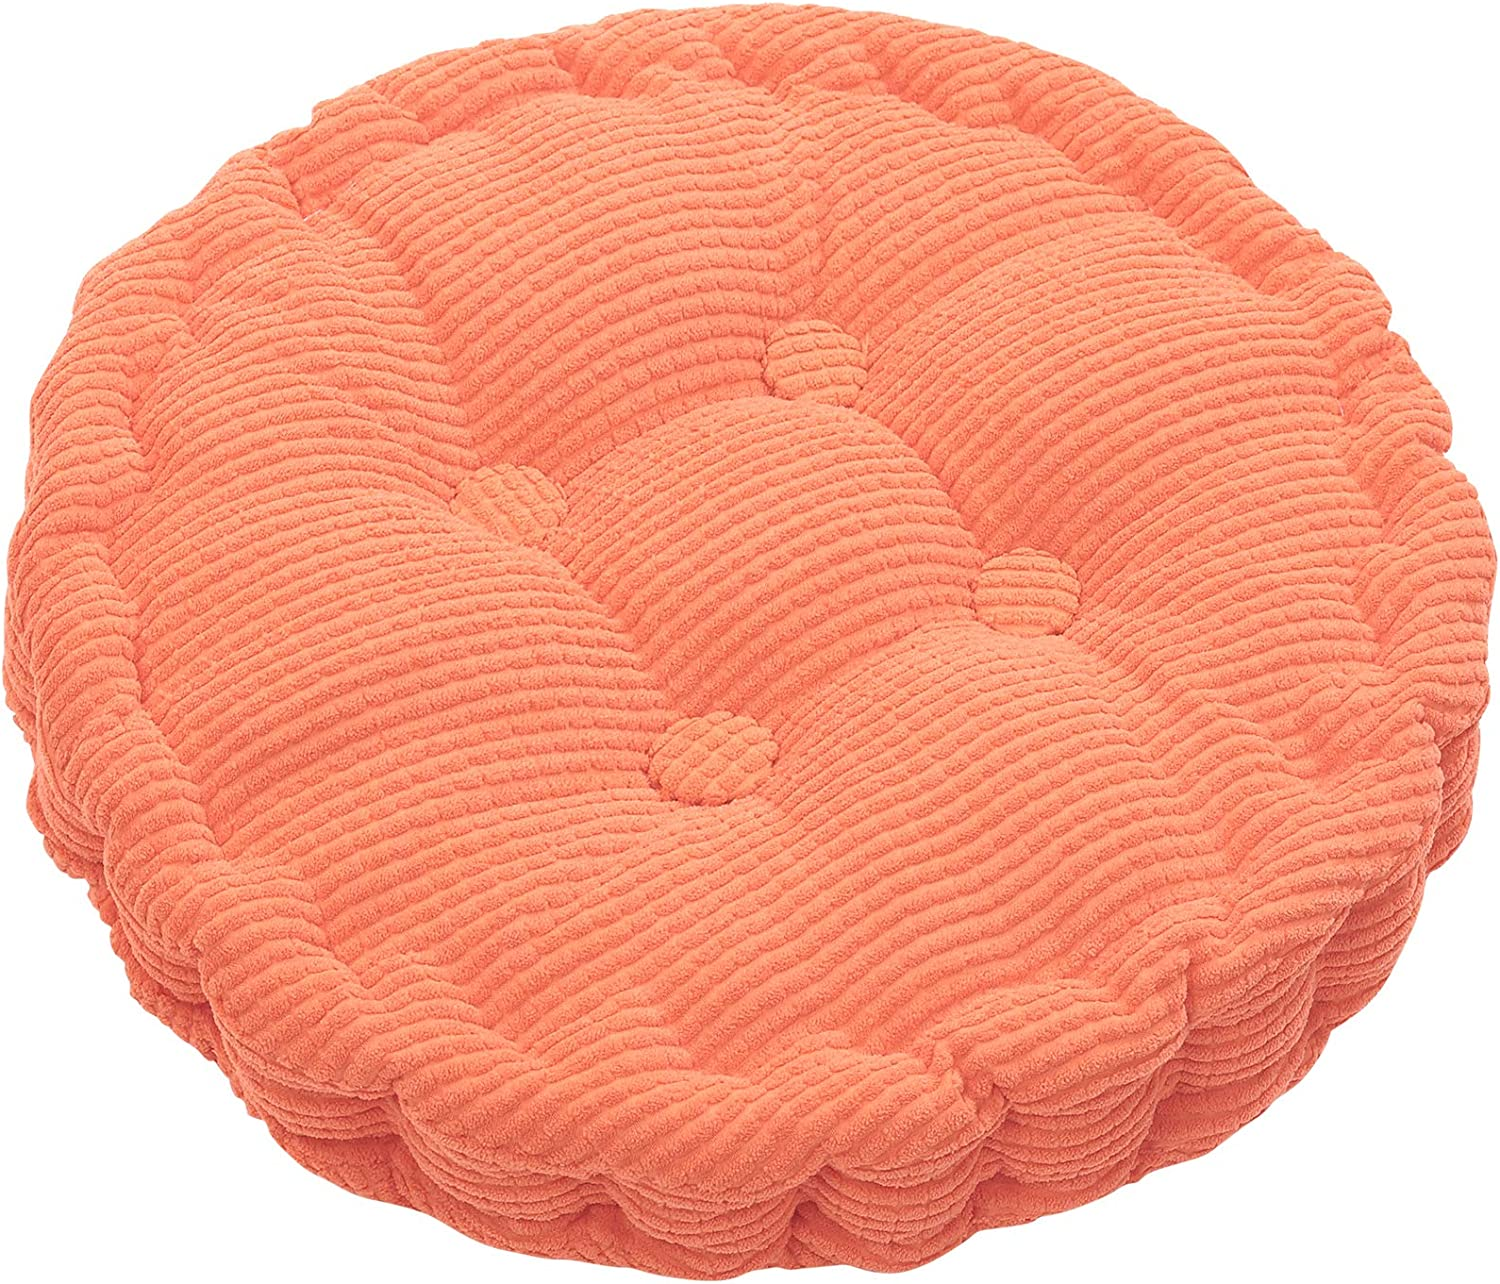 HomeMiYN Round Seat Cushions, EPE Foam Filled Indoor Chair Pad Cushions for Home, Office, Dining, Kitchen, Orange, 15.7'' x 15.7''